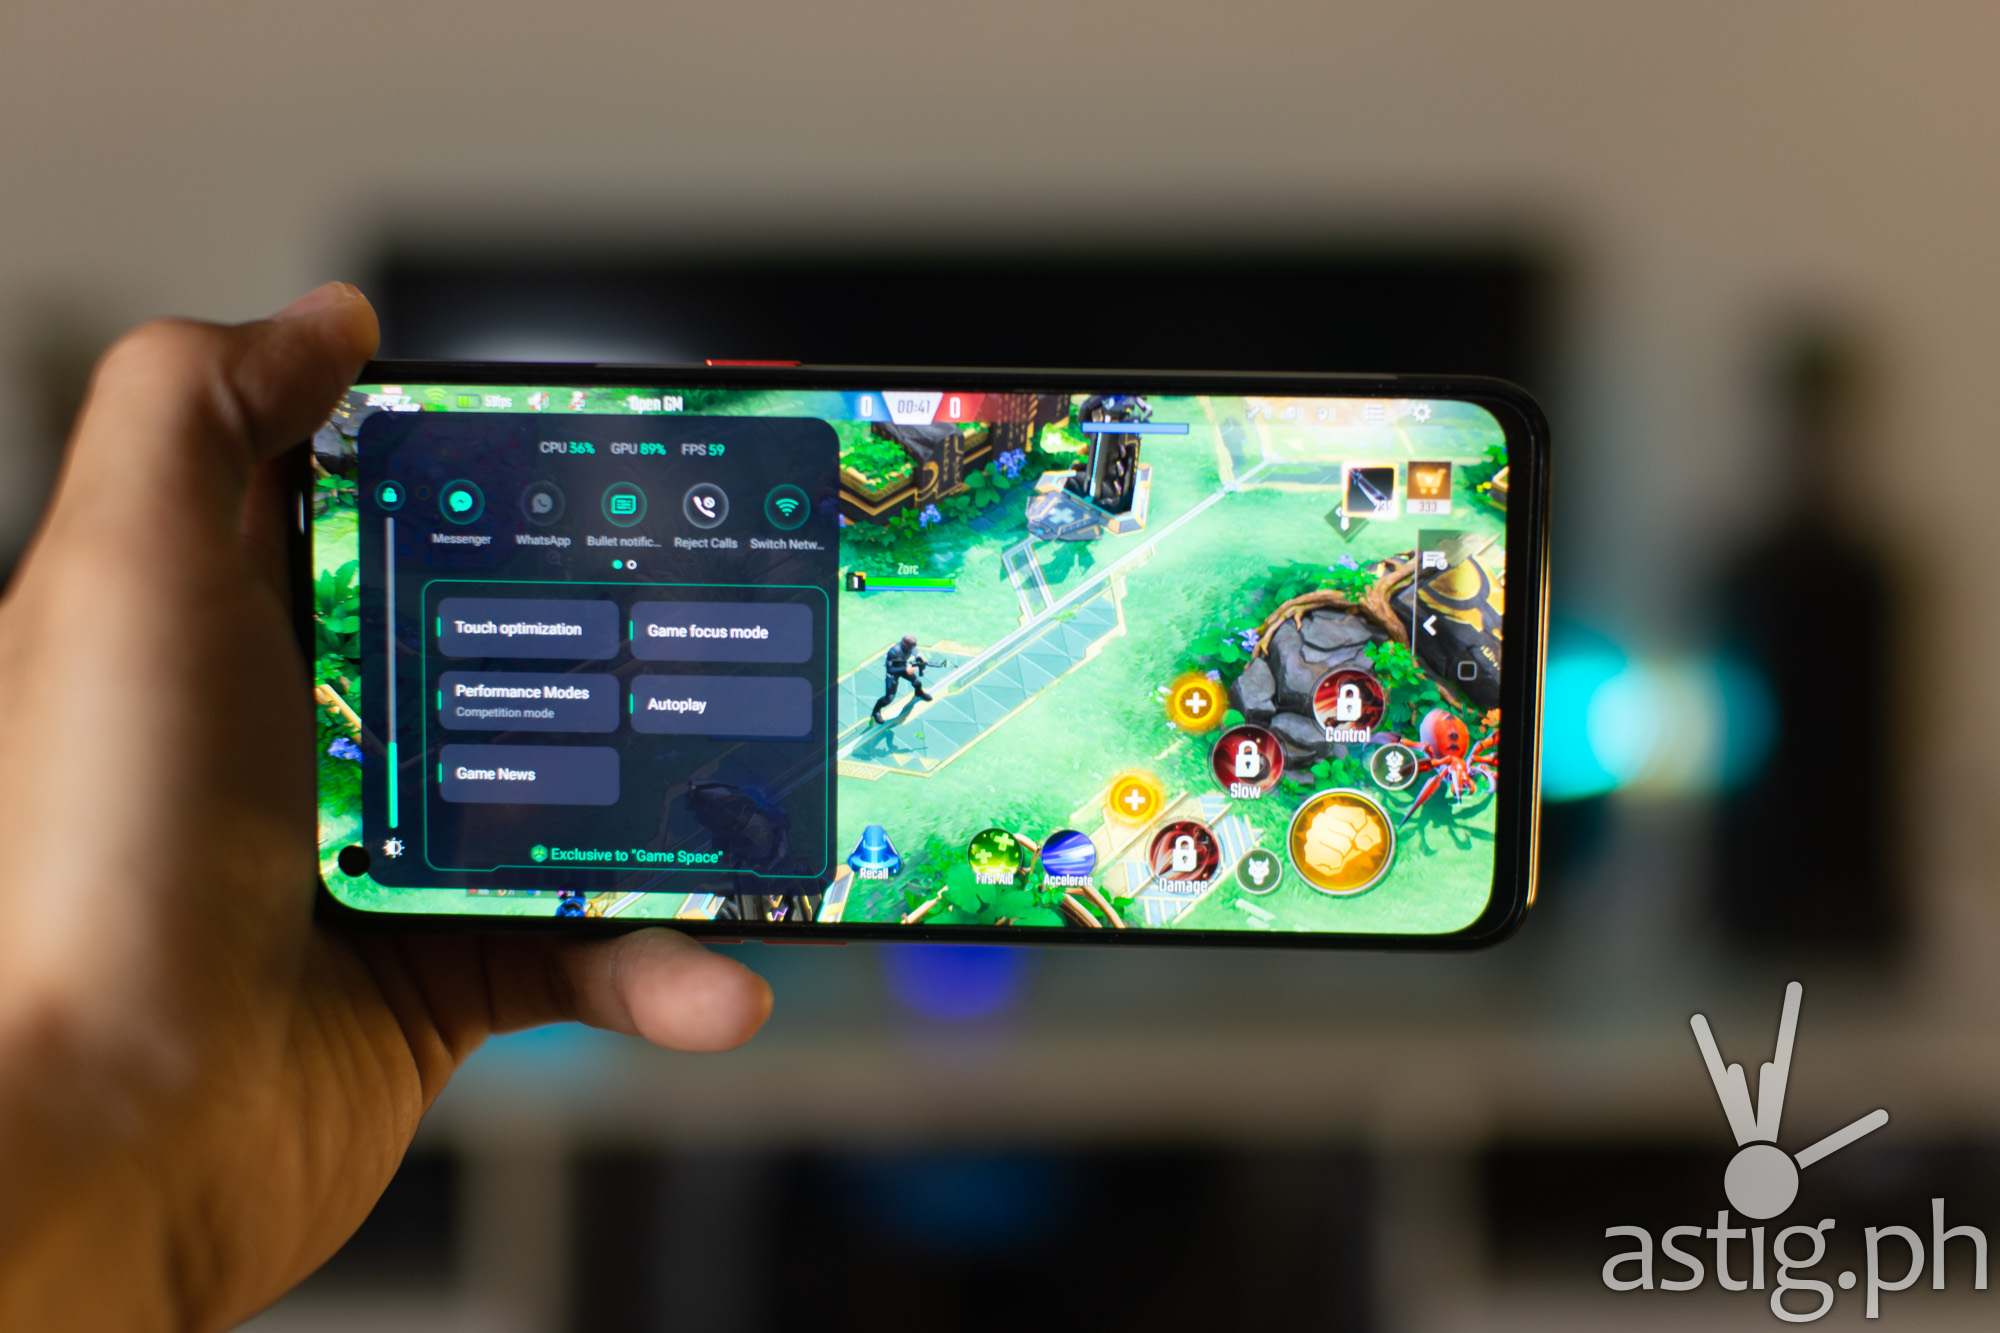 Game Space in-game menu - OPPO Reno5 Marvel Edition